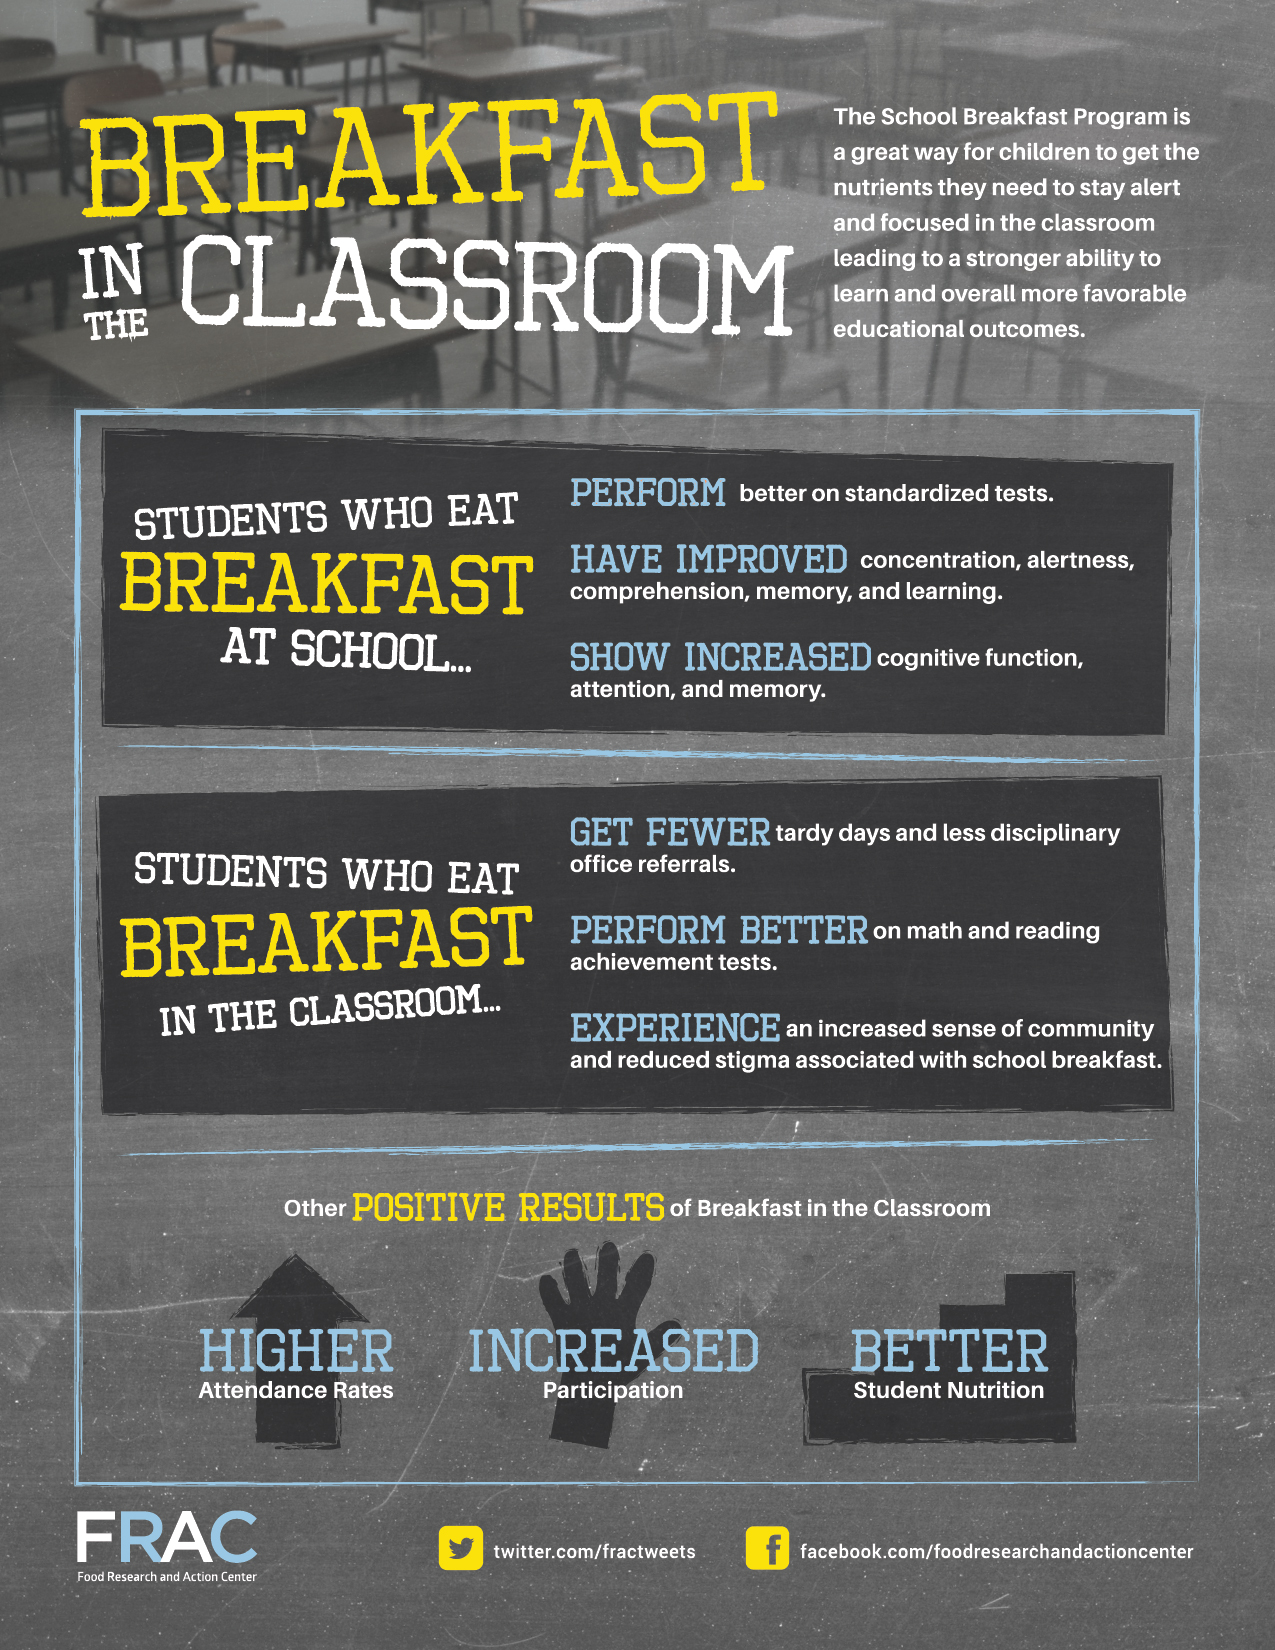 Breakfast in the classroom infographic